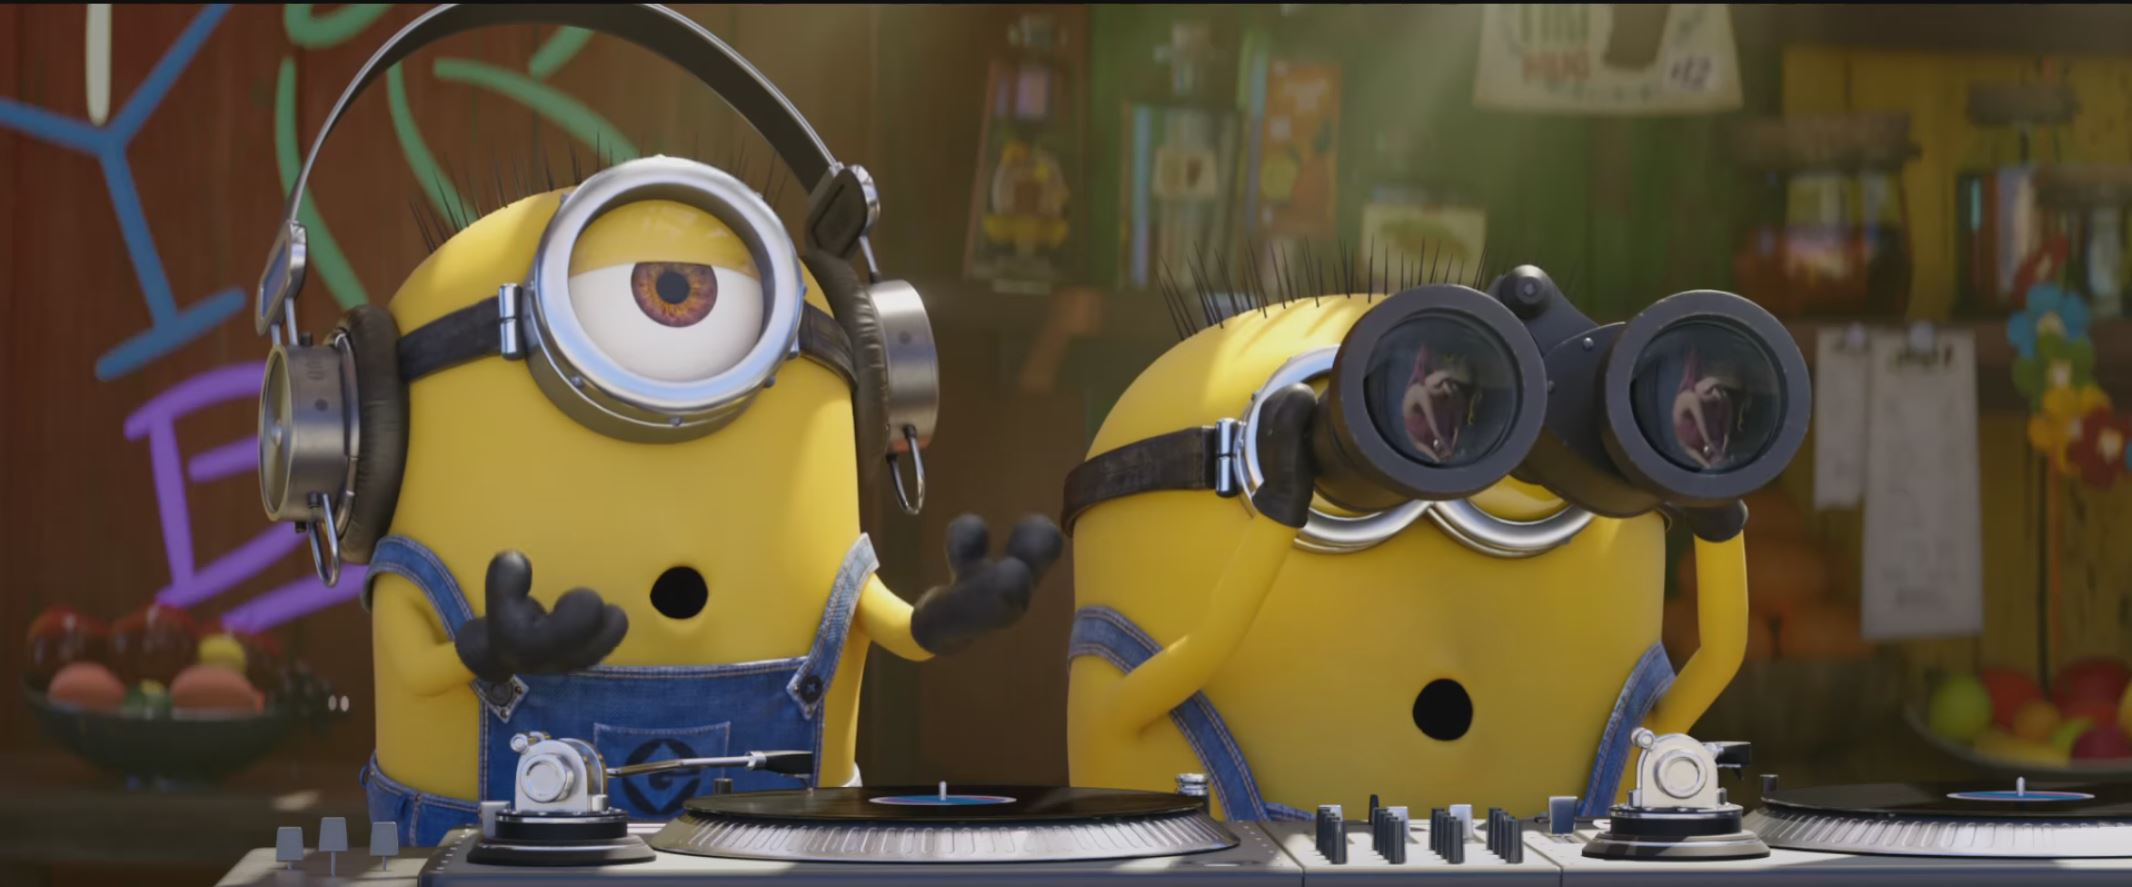 Watch The New Despicable Me 3 - Official Trailer !